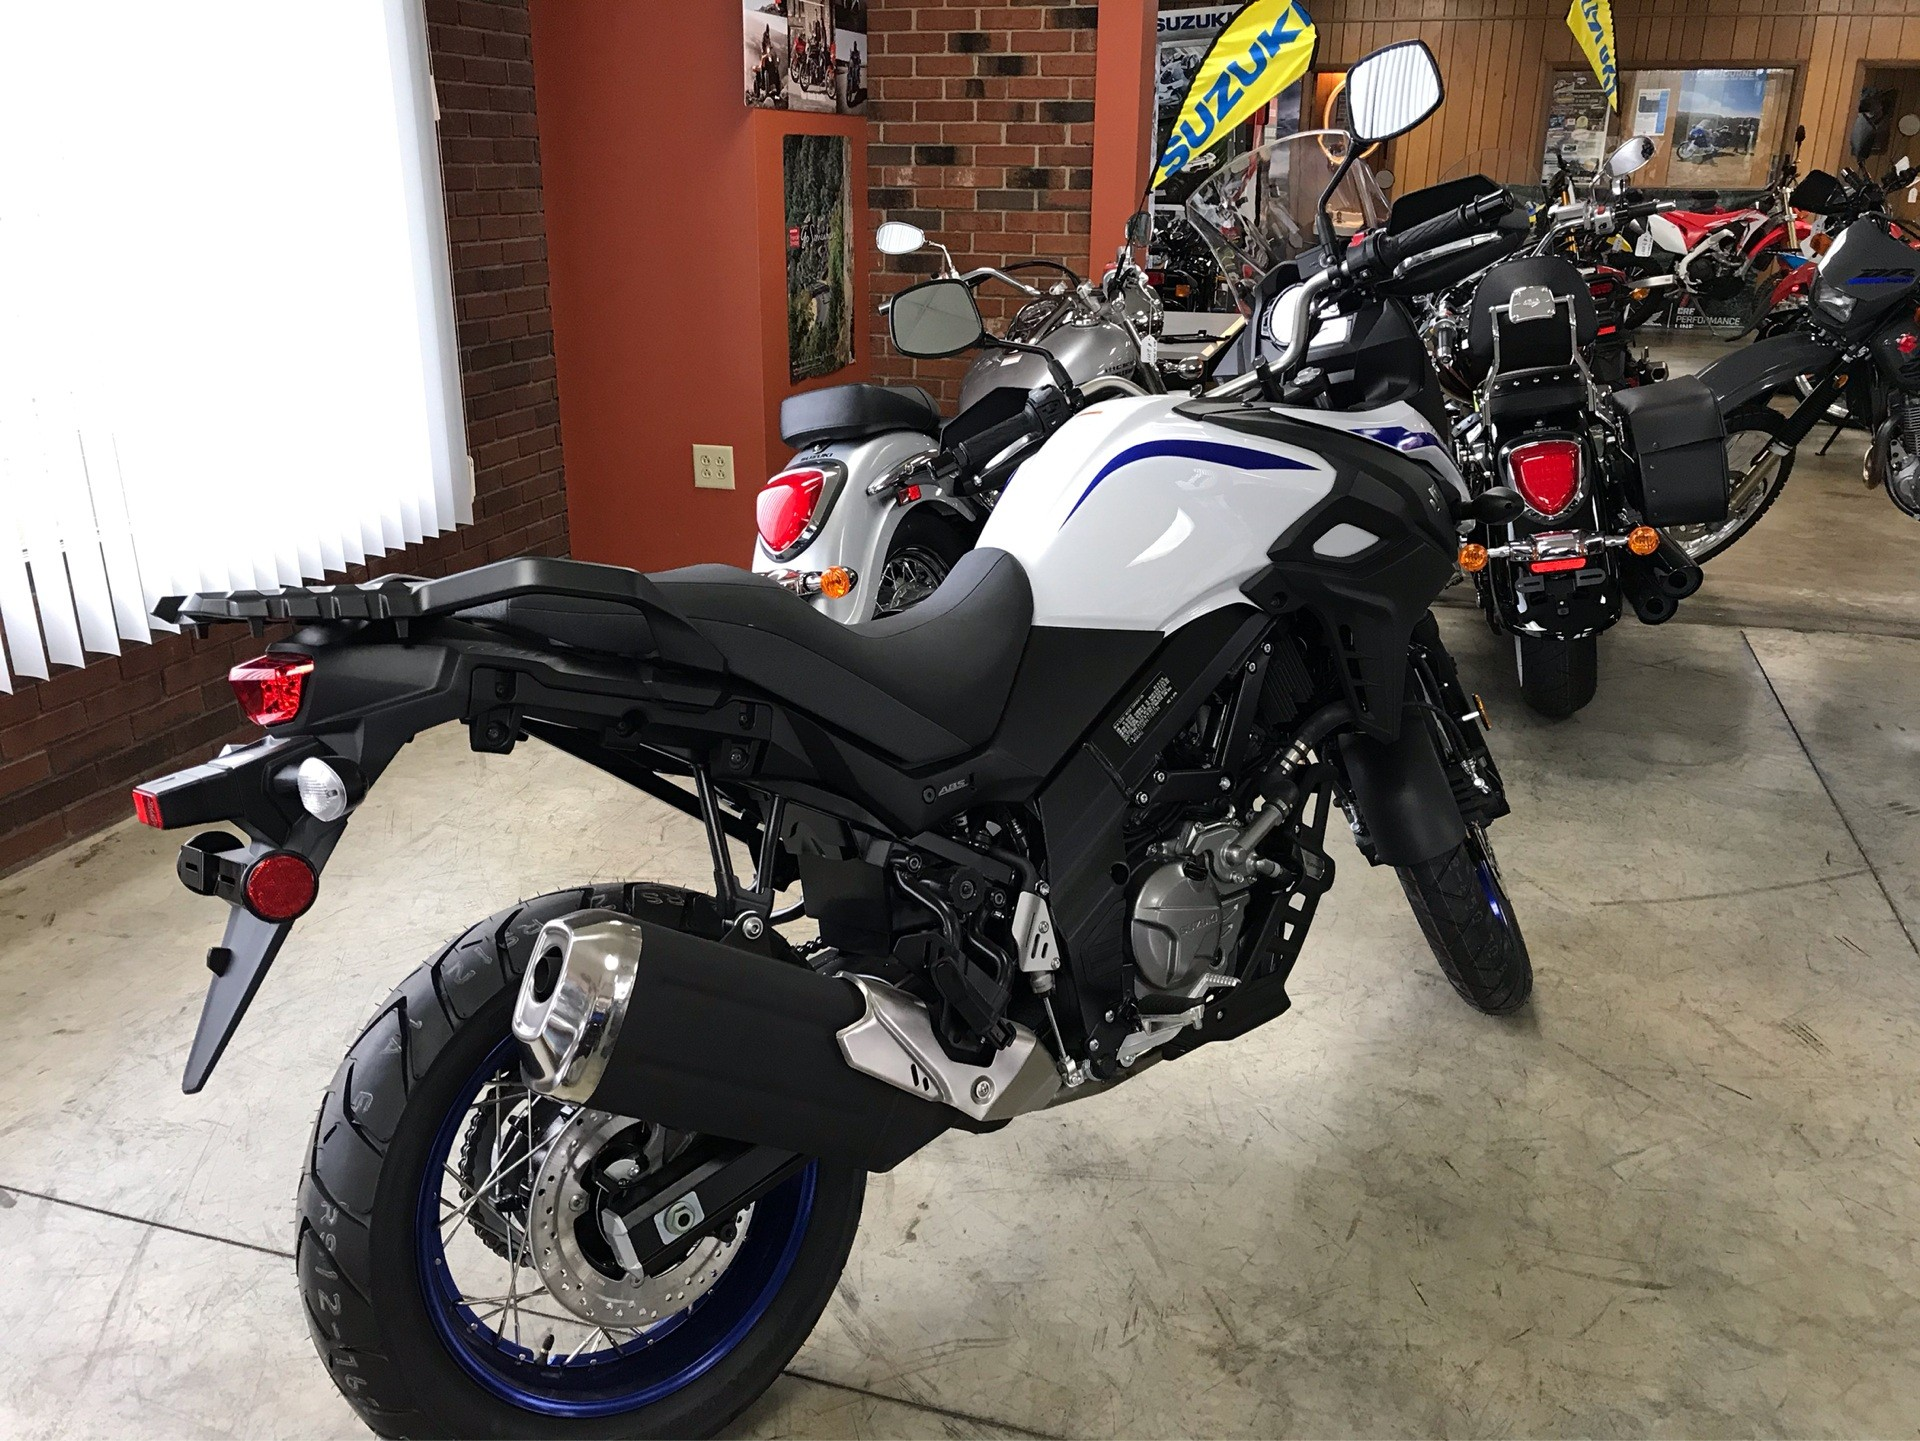 2019 Suzuki V-Strom 650XT in Sanford, North Carolina - Photo 8